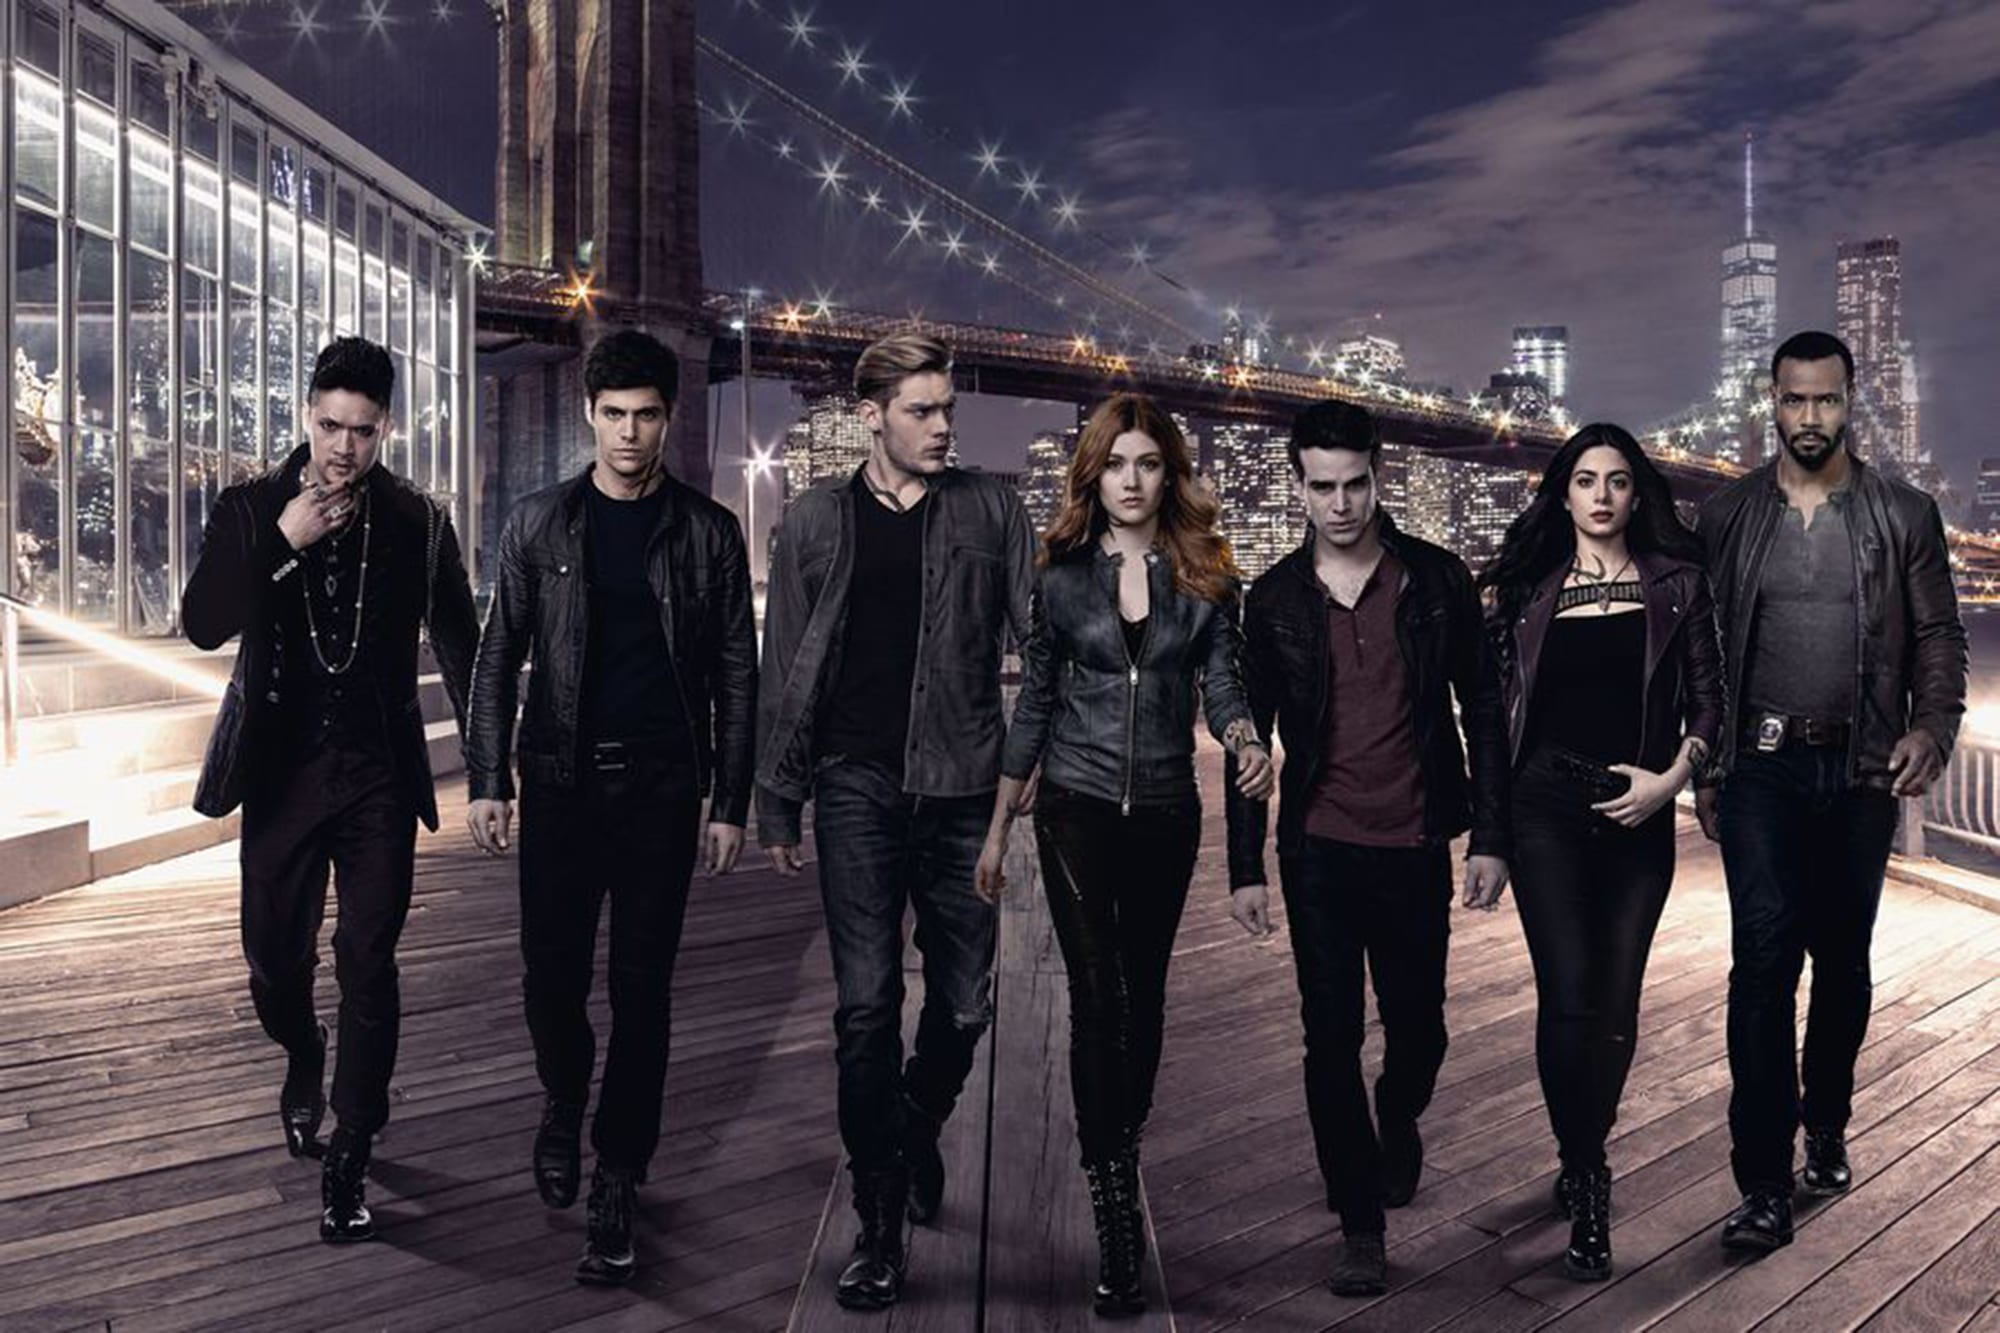 In anticipation of the long-awaited premiere of season 3B, we asked some dedicated 'Shadowhunters' fans about their experiences with the show.